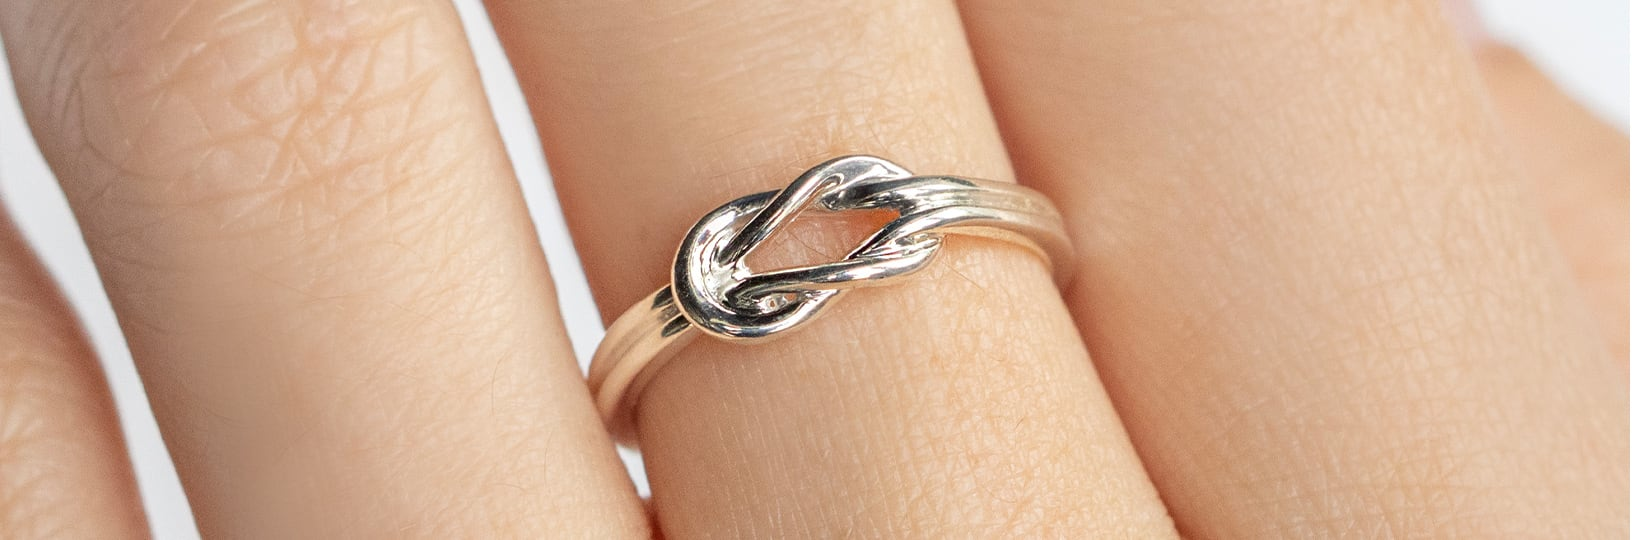 Love knot engagement ring